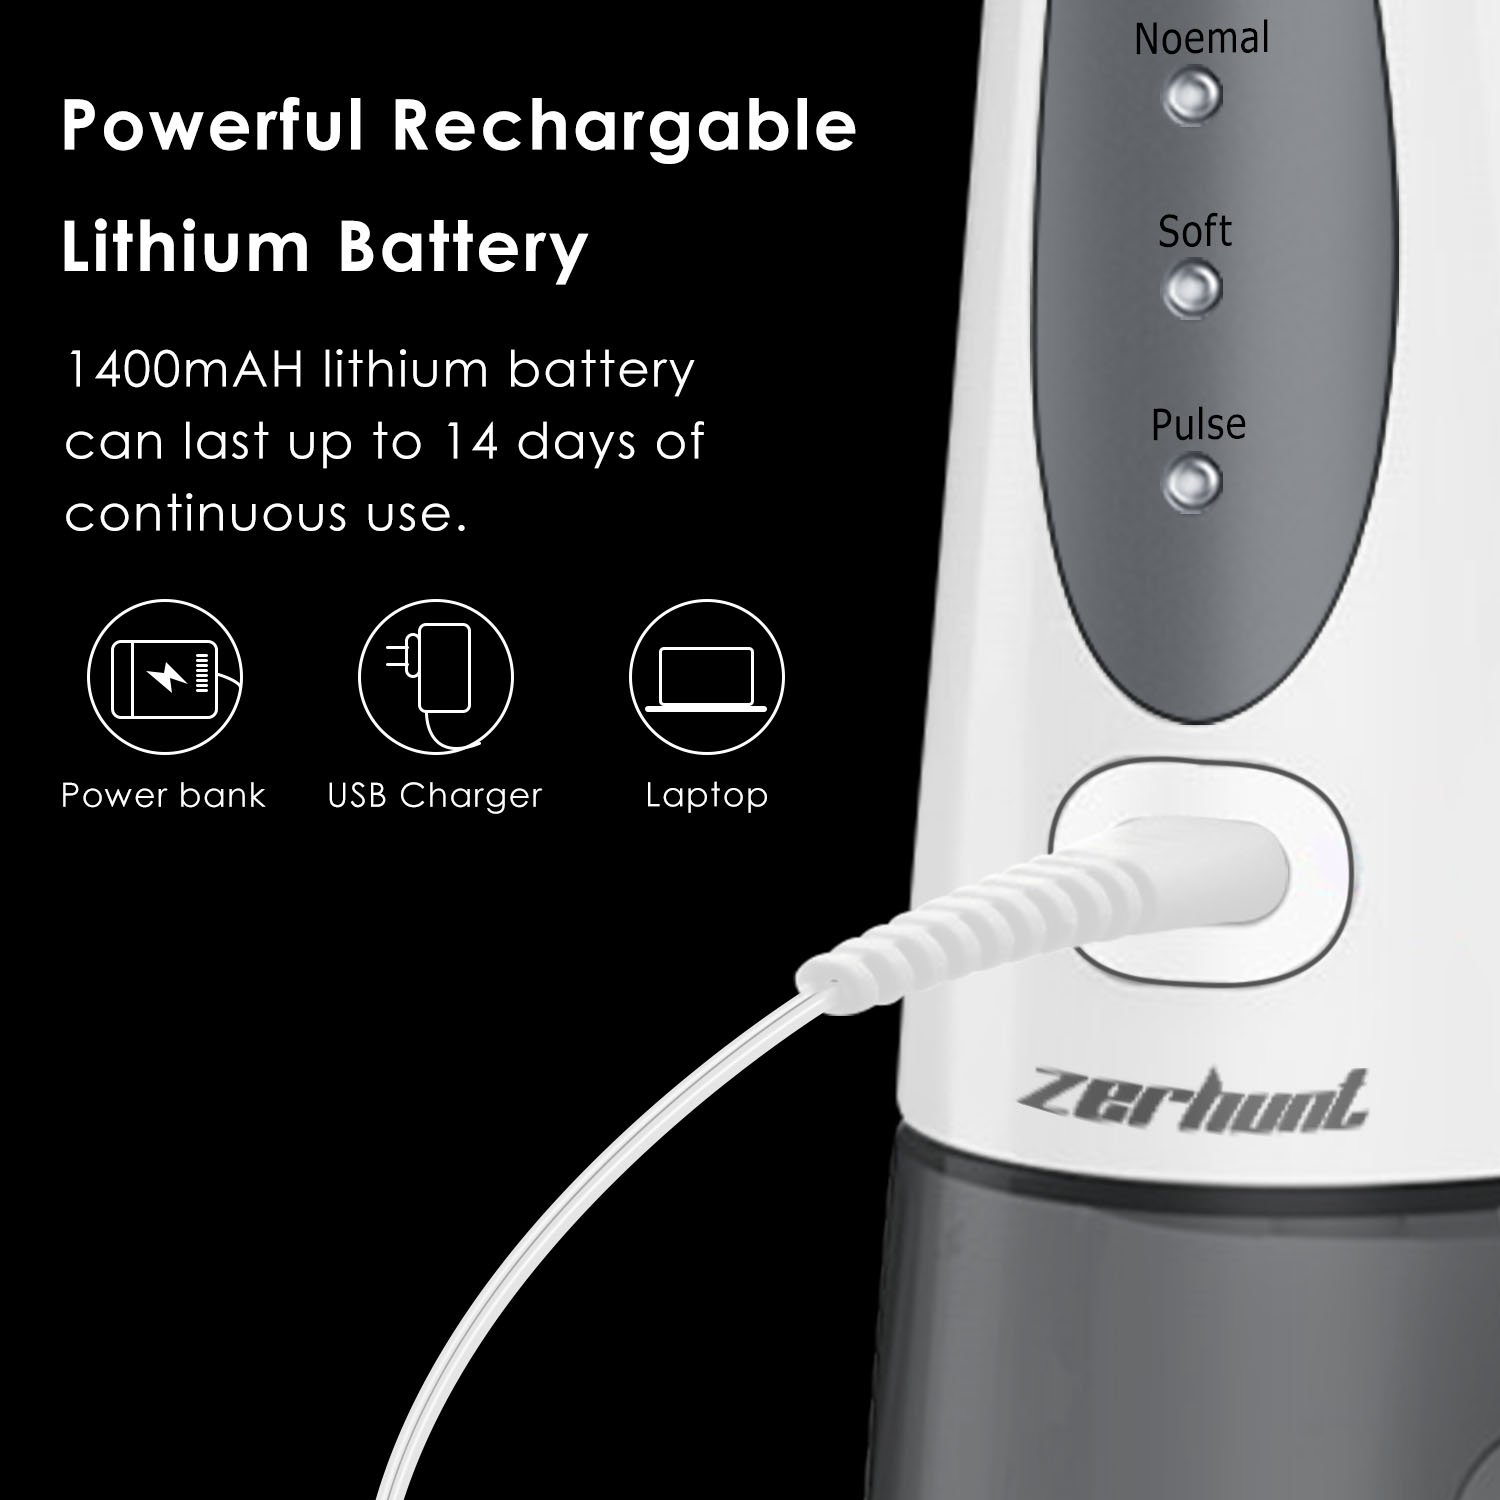 [2018 UPGRADED] Cordless Water Flosser Oral Irrigator - Zerhunt Professional Rechargable Portable Dental Water Jet With 3 Jet Tips For Braces and Teeth Whitening,Travel and Home Use by Zerhunt (Image #6)